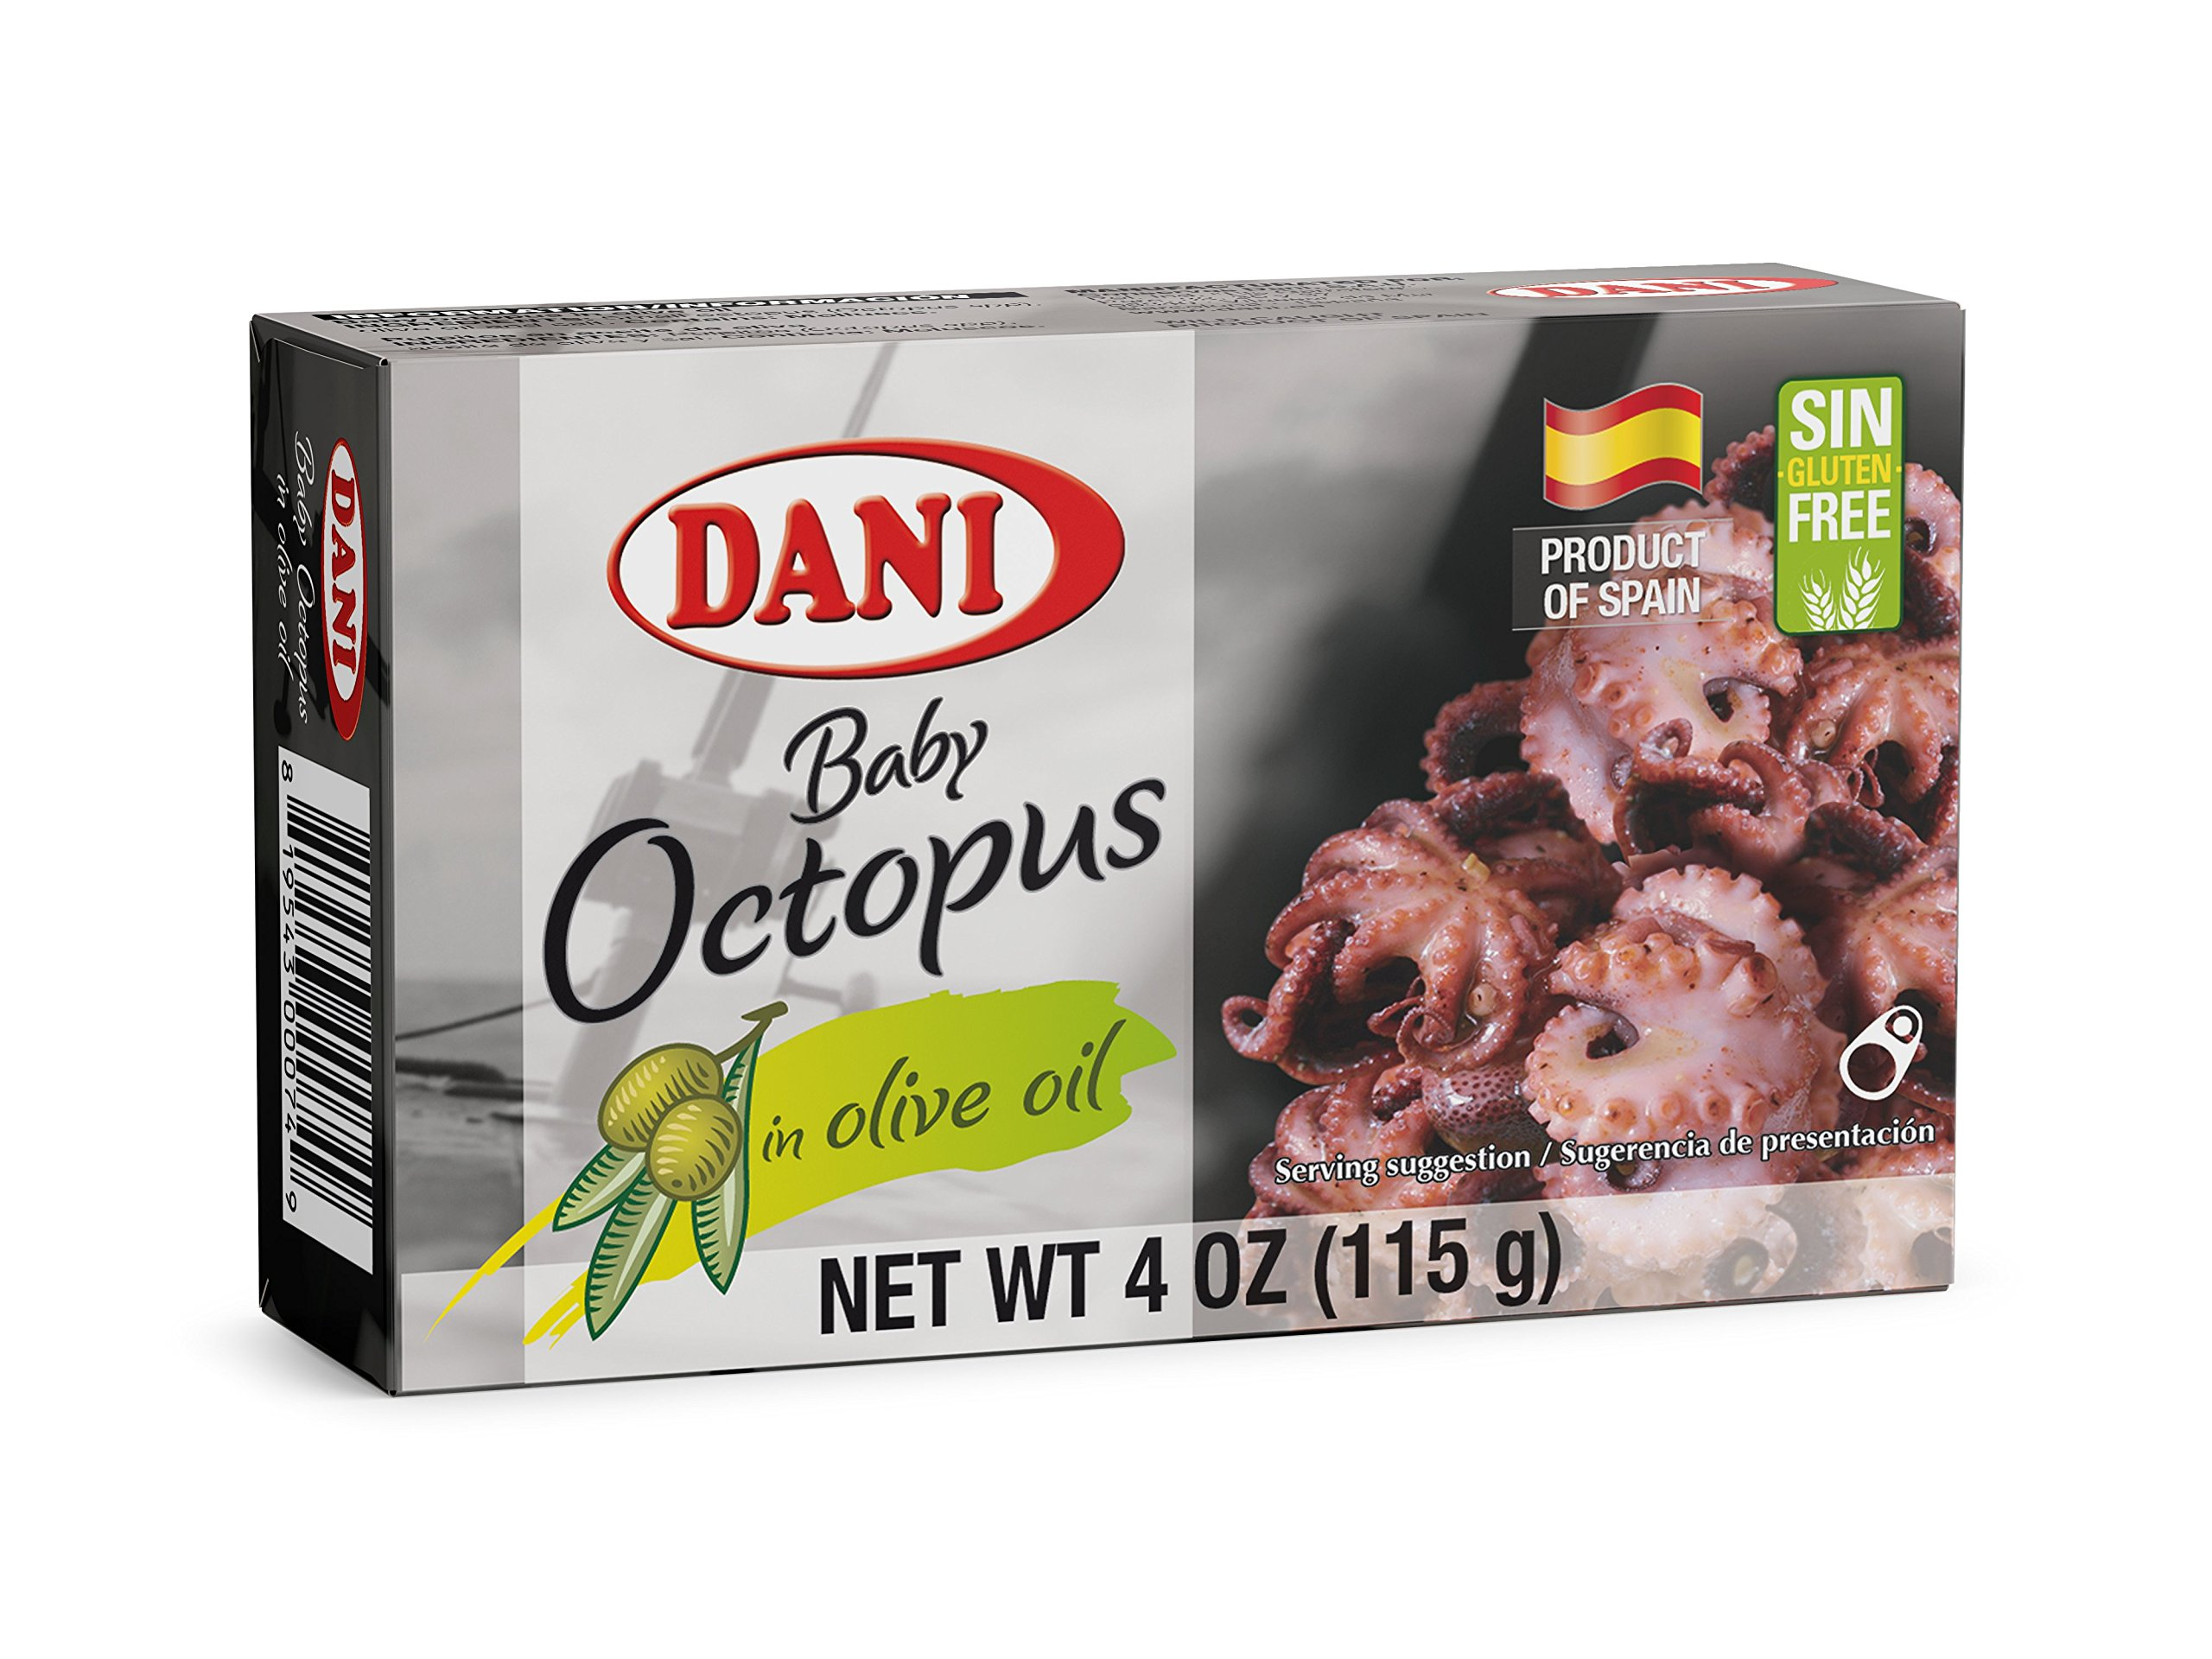 Dani Baby Octopus (Pulpitos) in Olive Oil, can of 4 oz (115 gr)